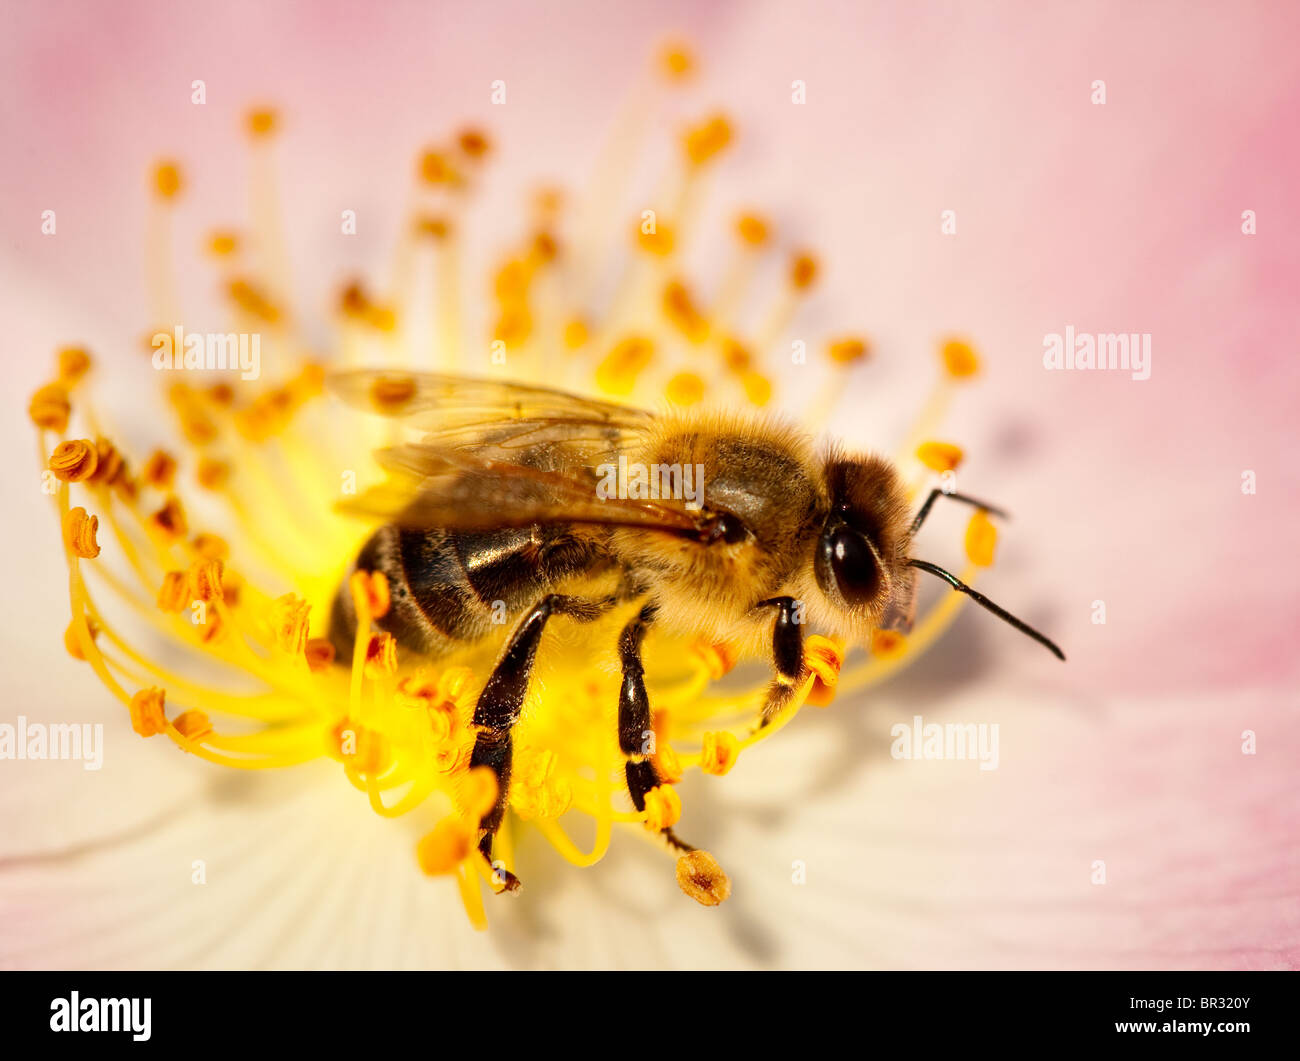 Working bee collecting pollen from a briar pink flower - Stock Image